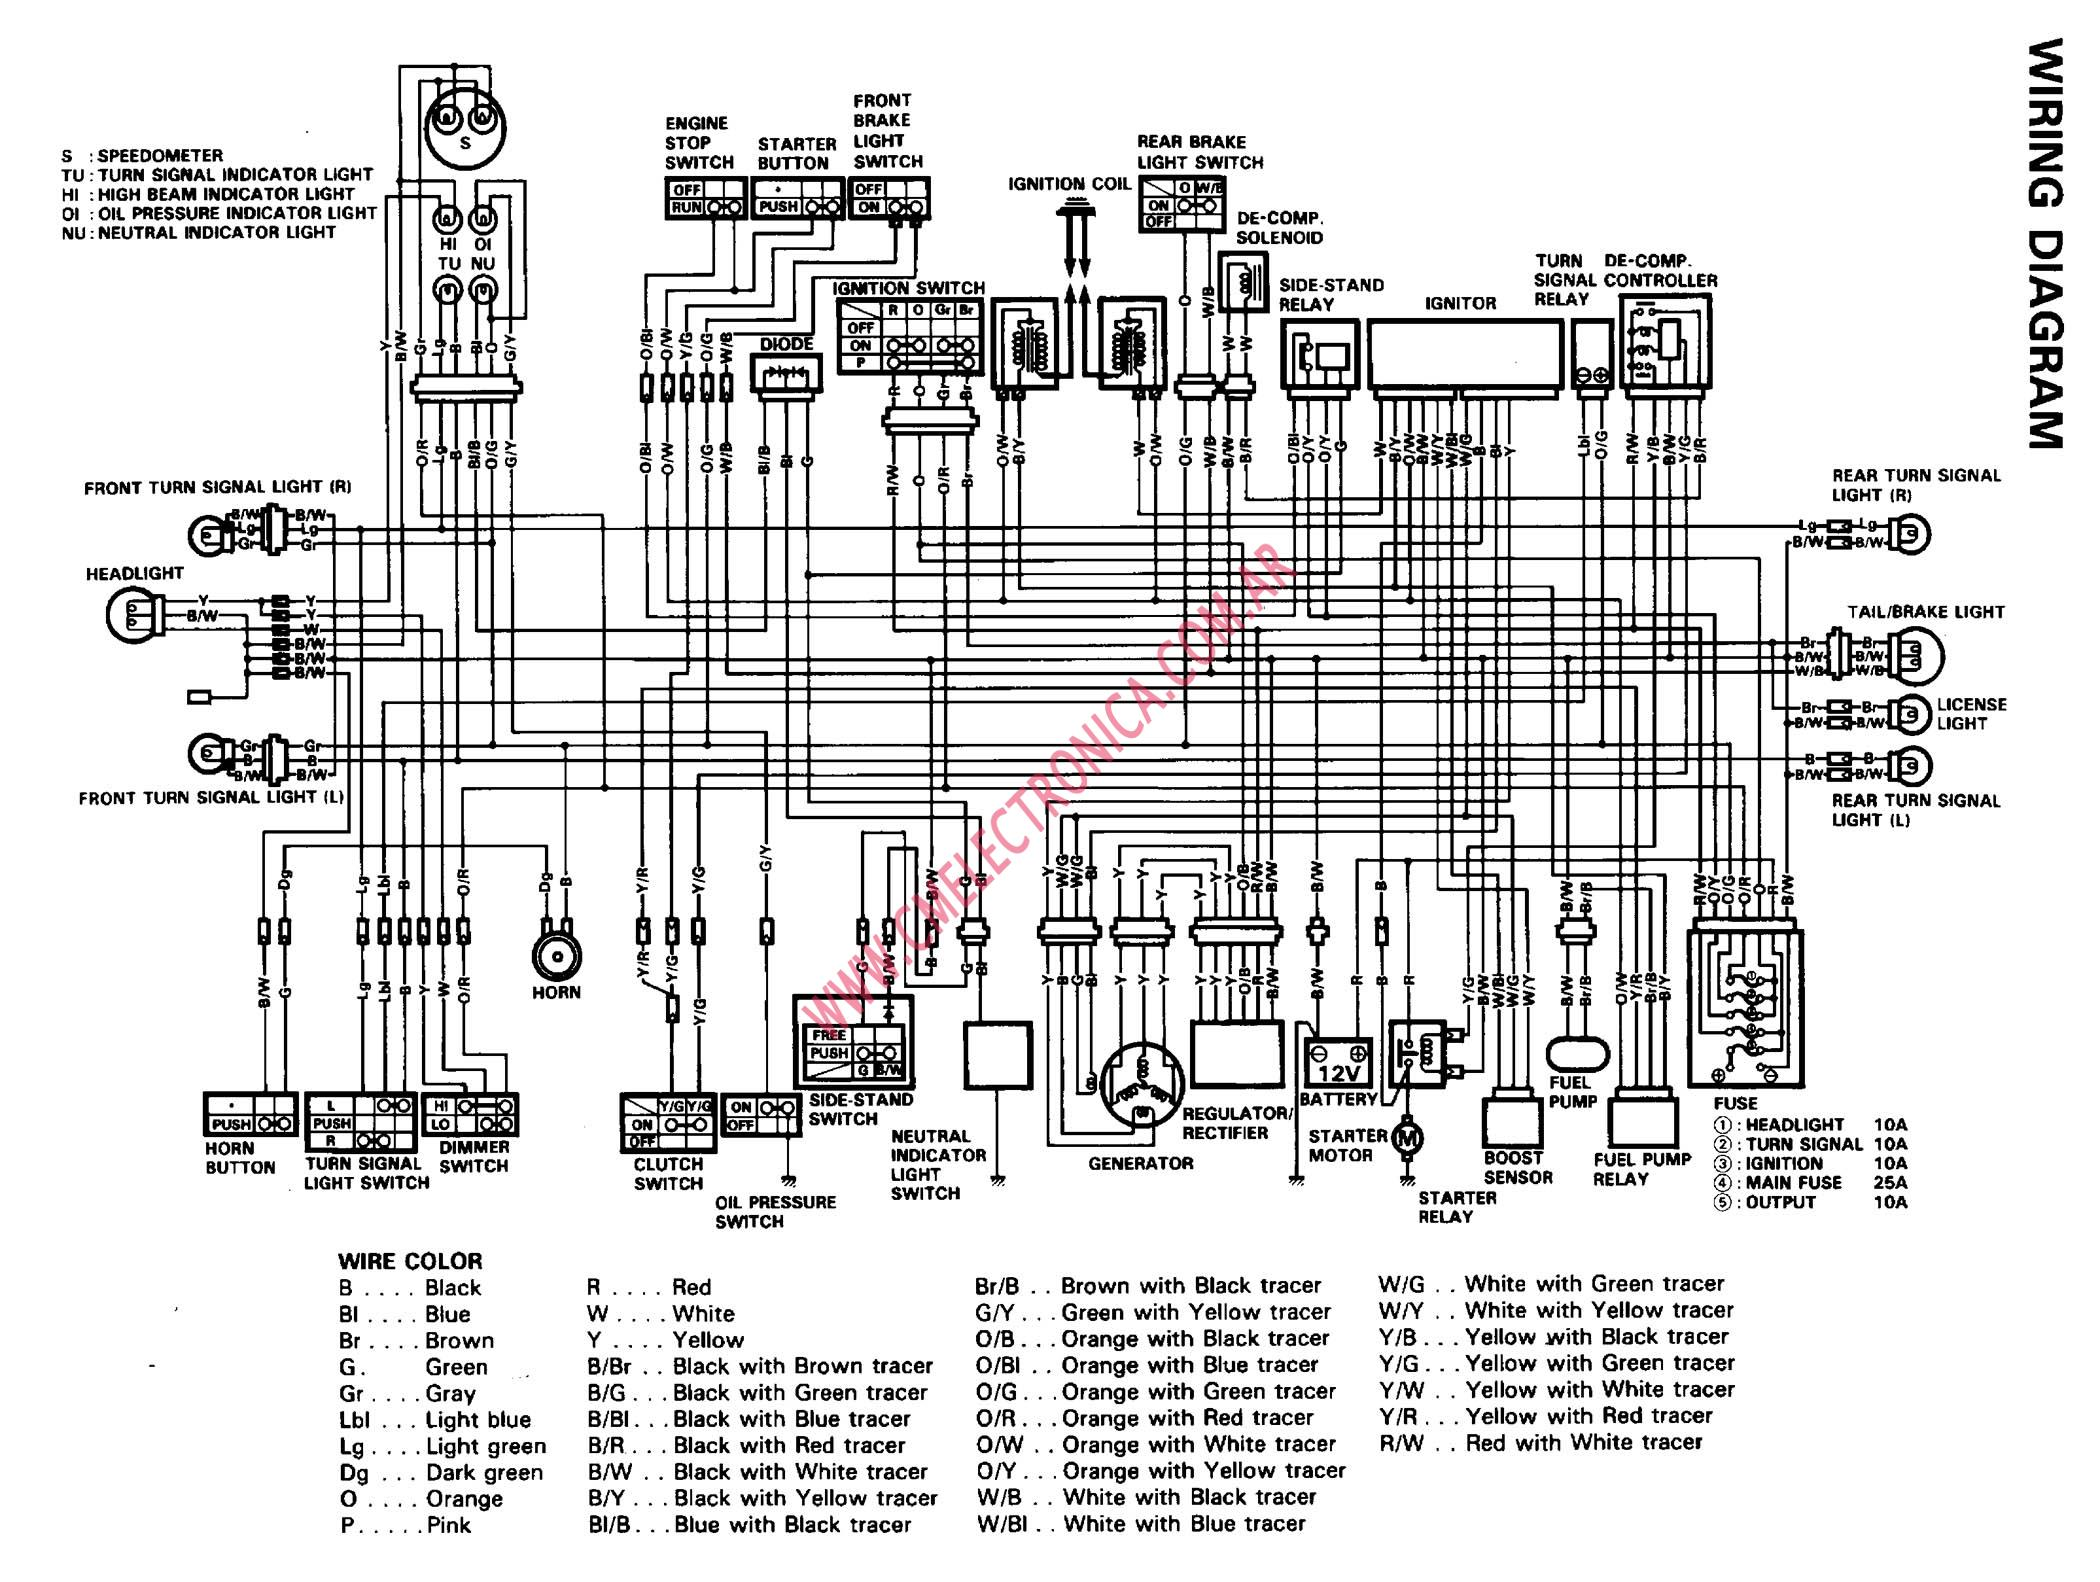 Suzuki Eiger Wiring Schematic 2004 800 Intruder Diagram Schematics Diagrams 1400 35 400 700